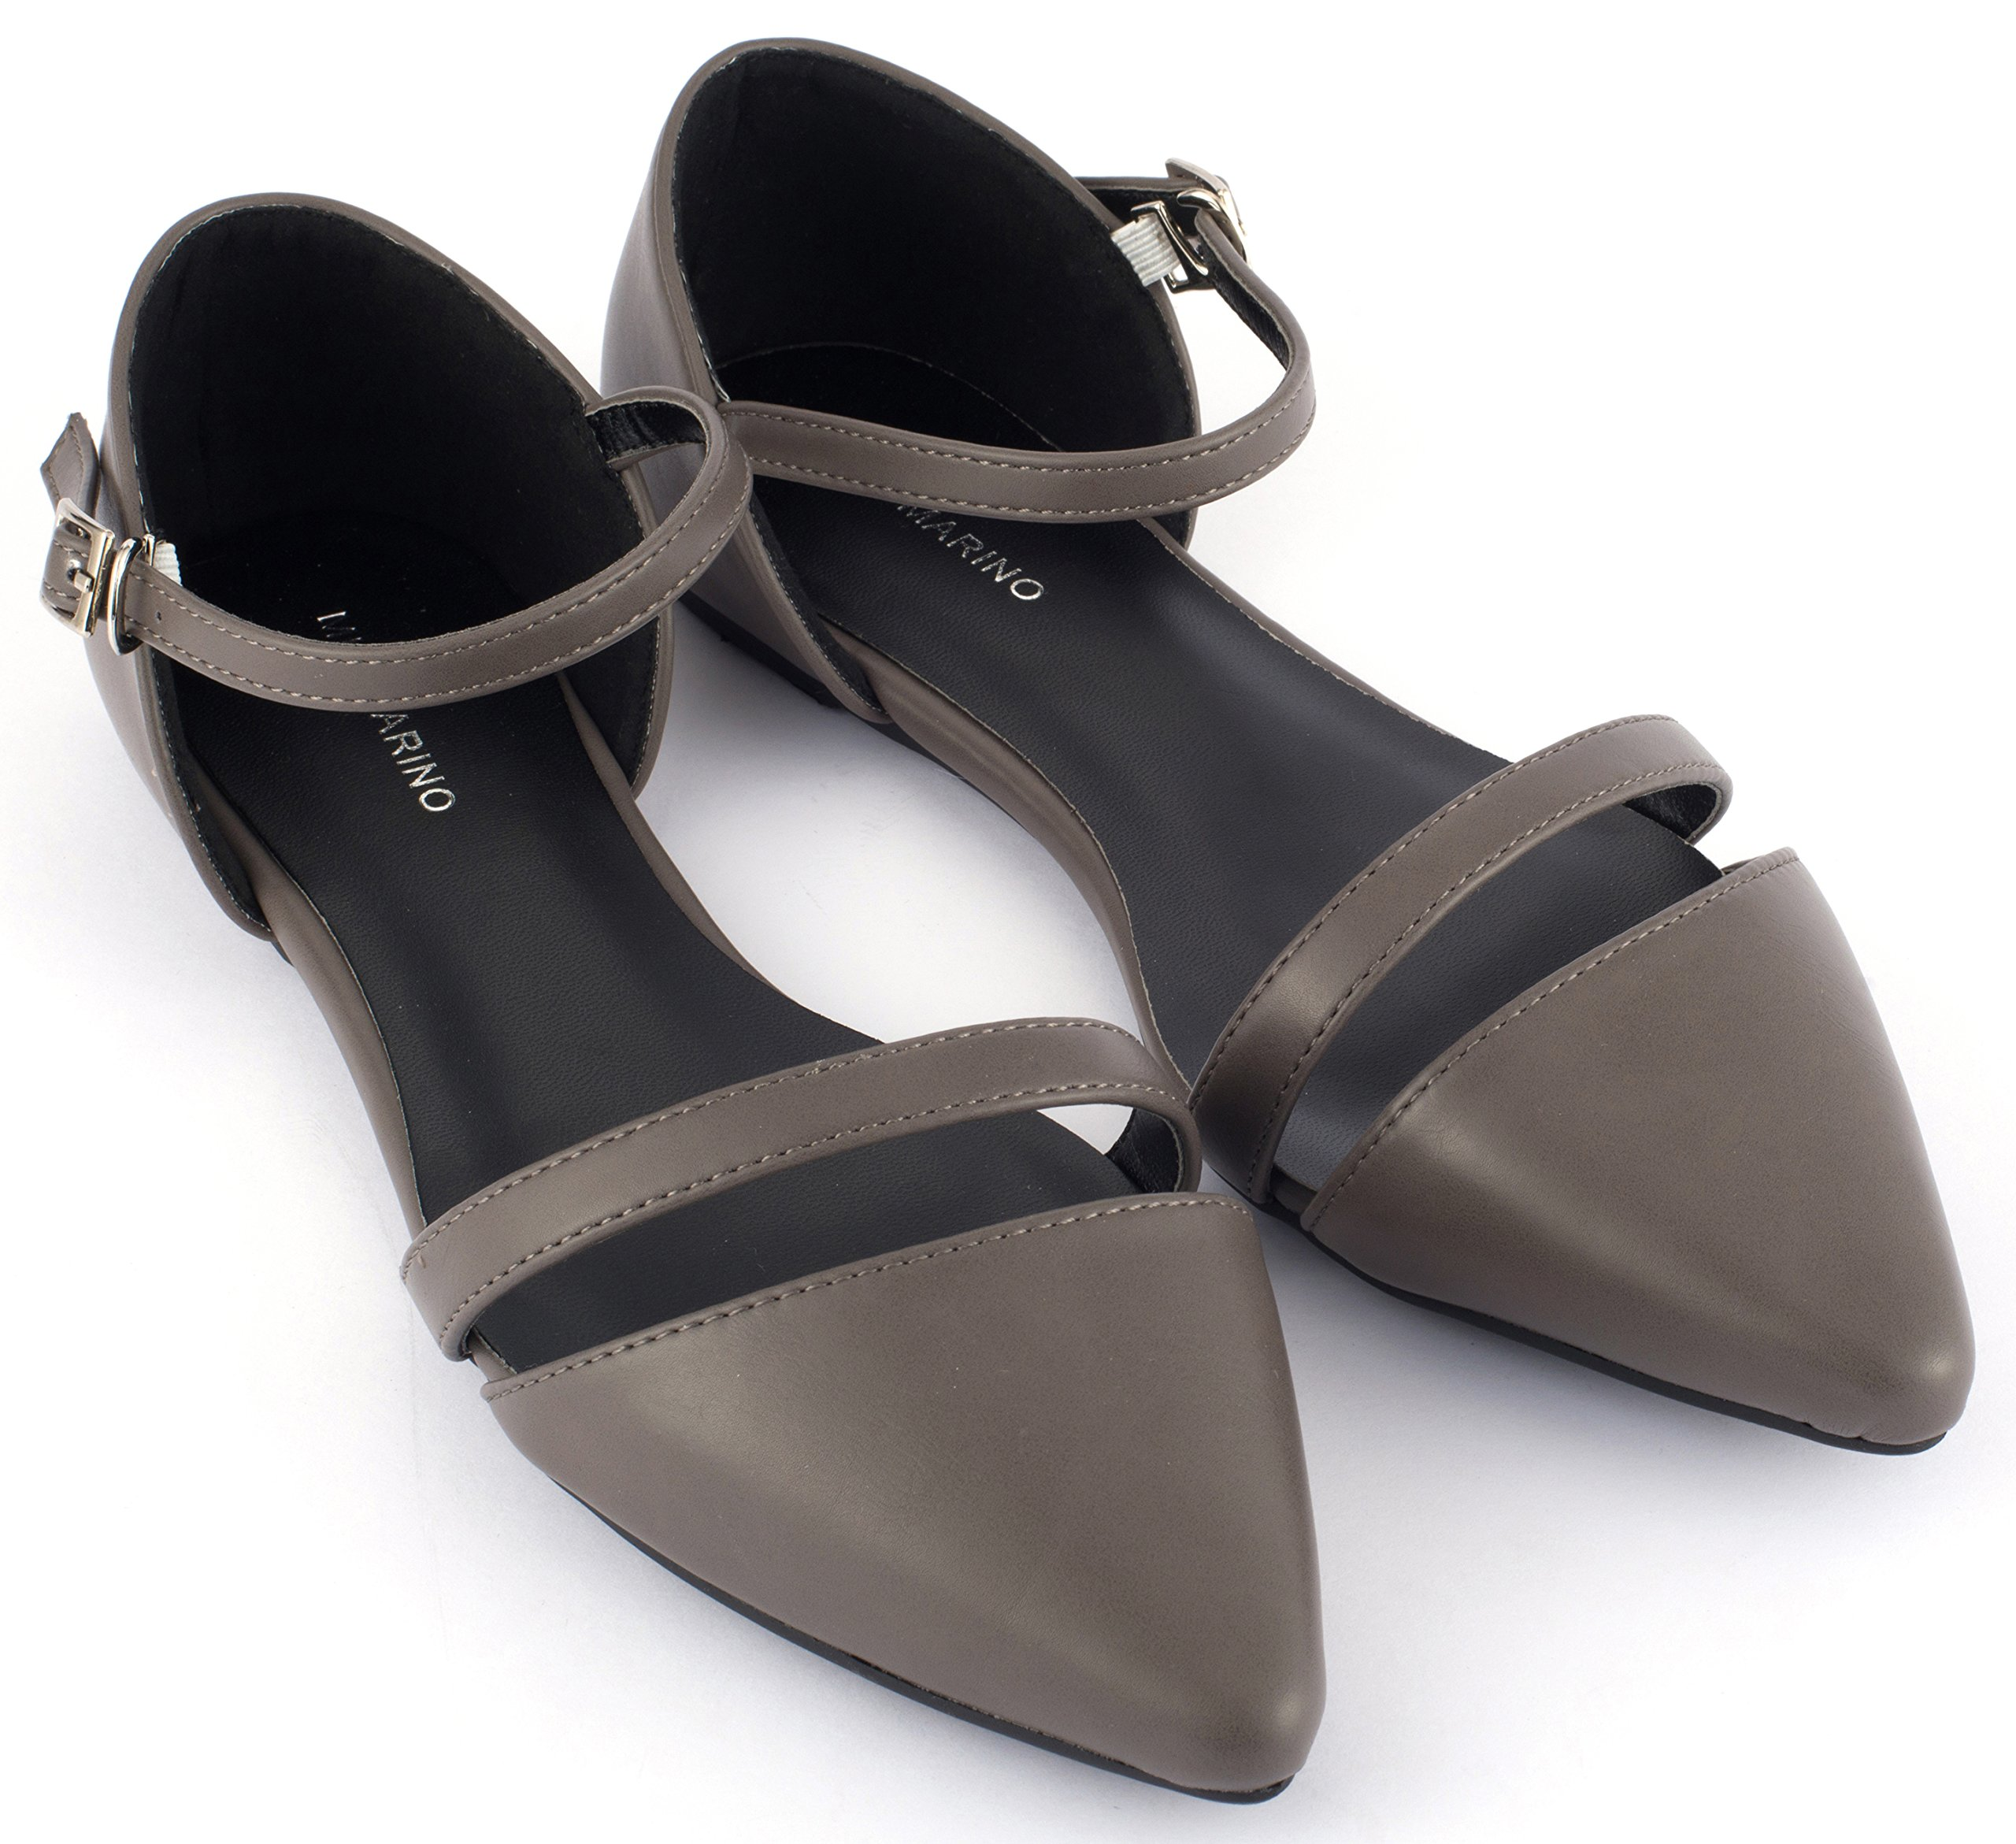 Mio Marino D'Orsay Pointed Toe Flats - Womens Ankle Strap Dress Shoes - Quick Release Buckle (Gray, 10)